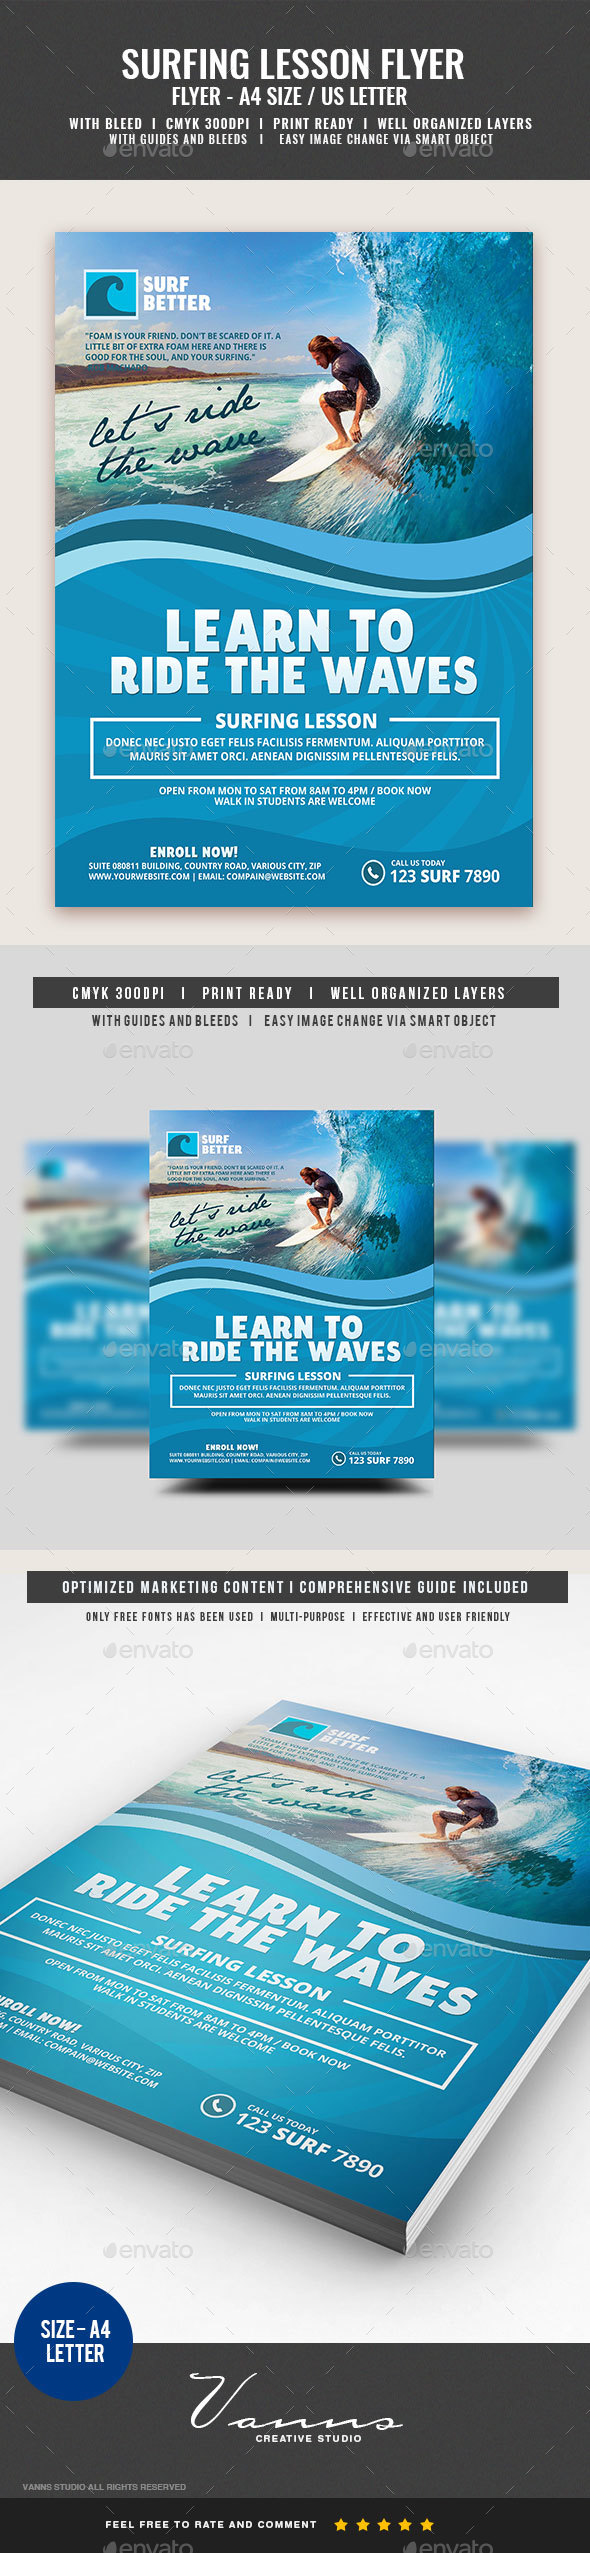 Surfing Lesson Flyer - Commerce Flyers